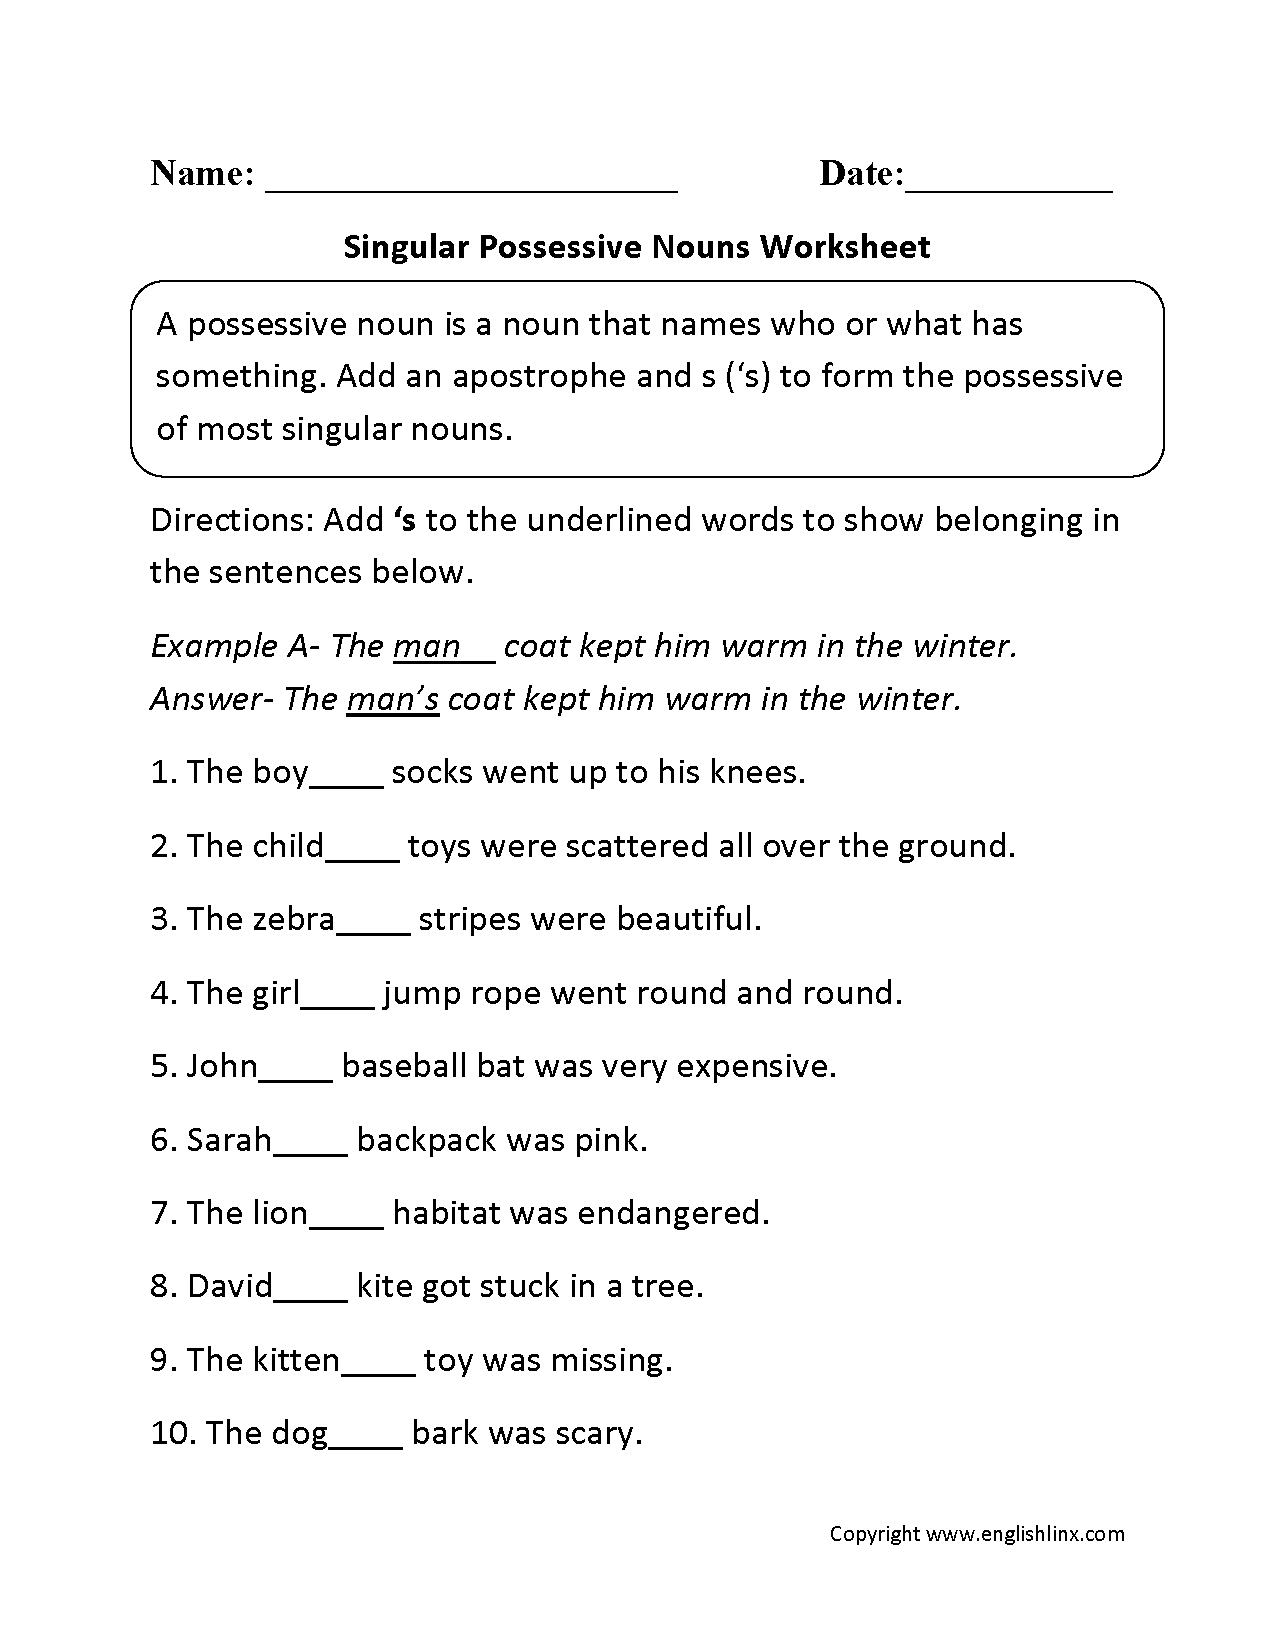 Aldiablosus  Personable Nouns Worksheets  Possessive Nouns Worksheets With Licious Possessive Nouns Worksheets With Endearing Fun Multiplication Worksheets Grade  Also Point Of View Worksheets For Rd Grade In Addition Chemical Compound Worksheet And General Science Worksheets As Well As Comparing Two Worksheets In Excel Additionally Comparing Whole Numbers Worksheet From Englishlinxcom With Aldiablosus  Licious Nouns Worksheets  Possessive Nouns Worksheets With Endearing Possessive Nouns Worksheets And Personable Fun Multiplication Worksheets Grade  Also Point Of View Worksheets For Rd Grade In Addition Chemical Compound Worksheet From Englishlinxcom